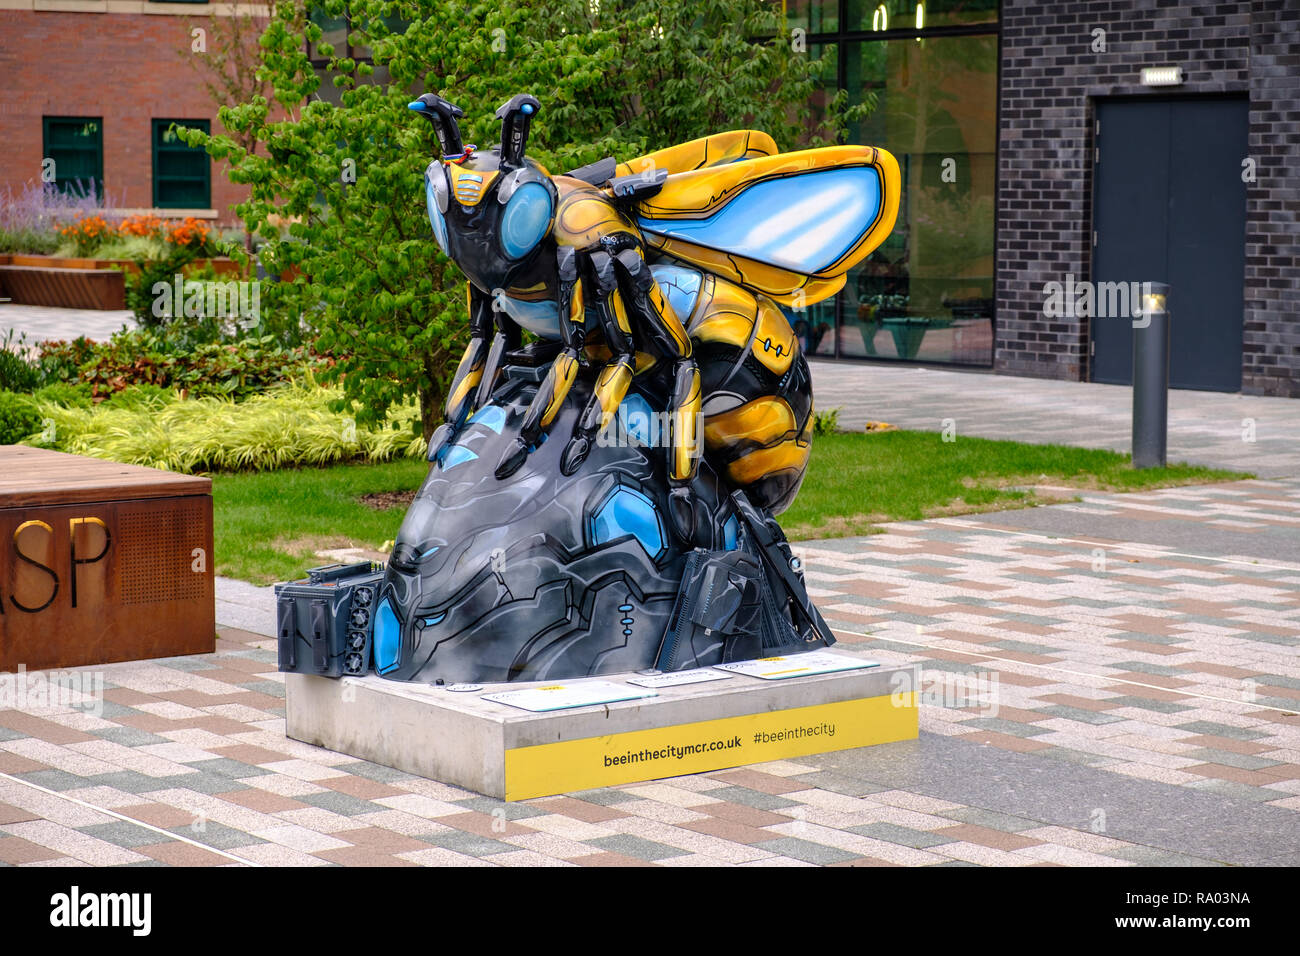 A Bee in the City sculpture, part of the summer 2018 public art event in the City of Manchester, UK - Stock Image